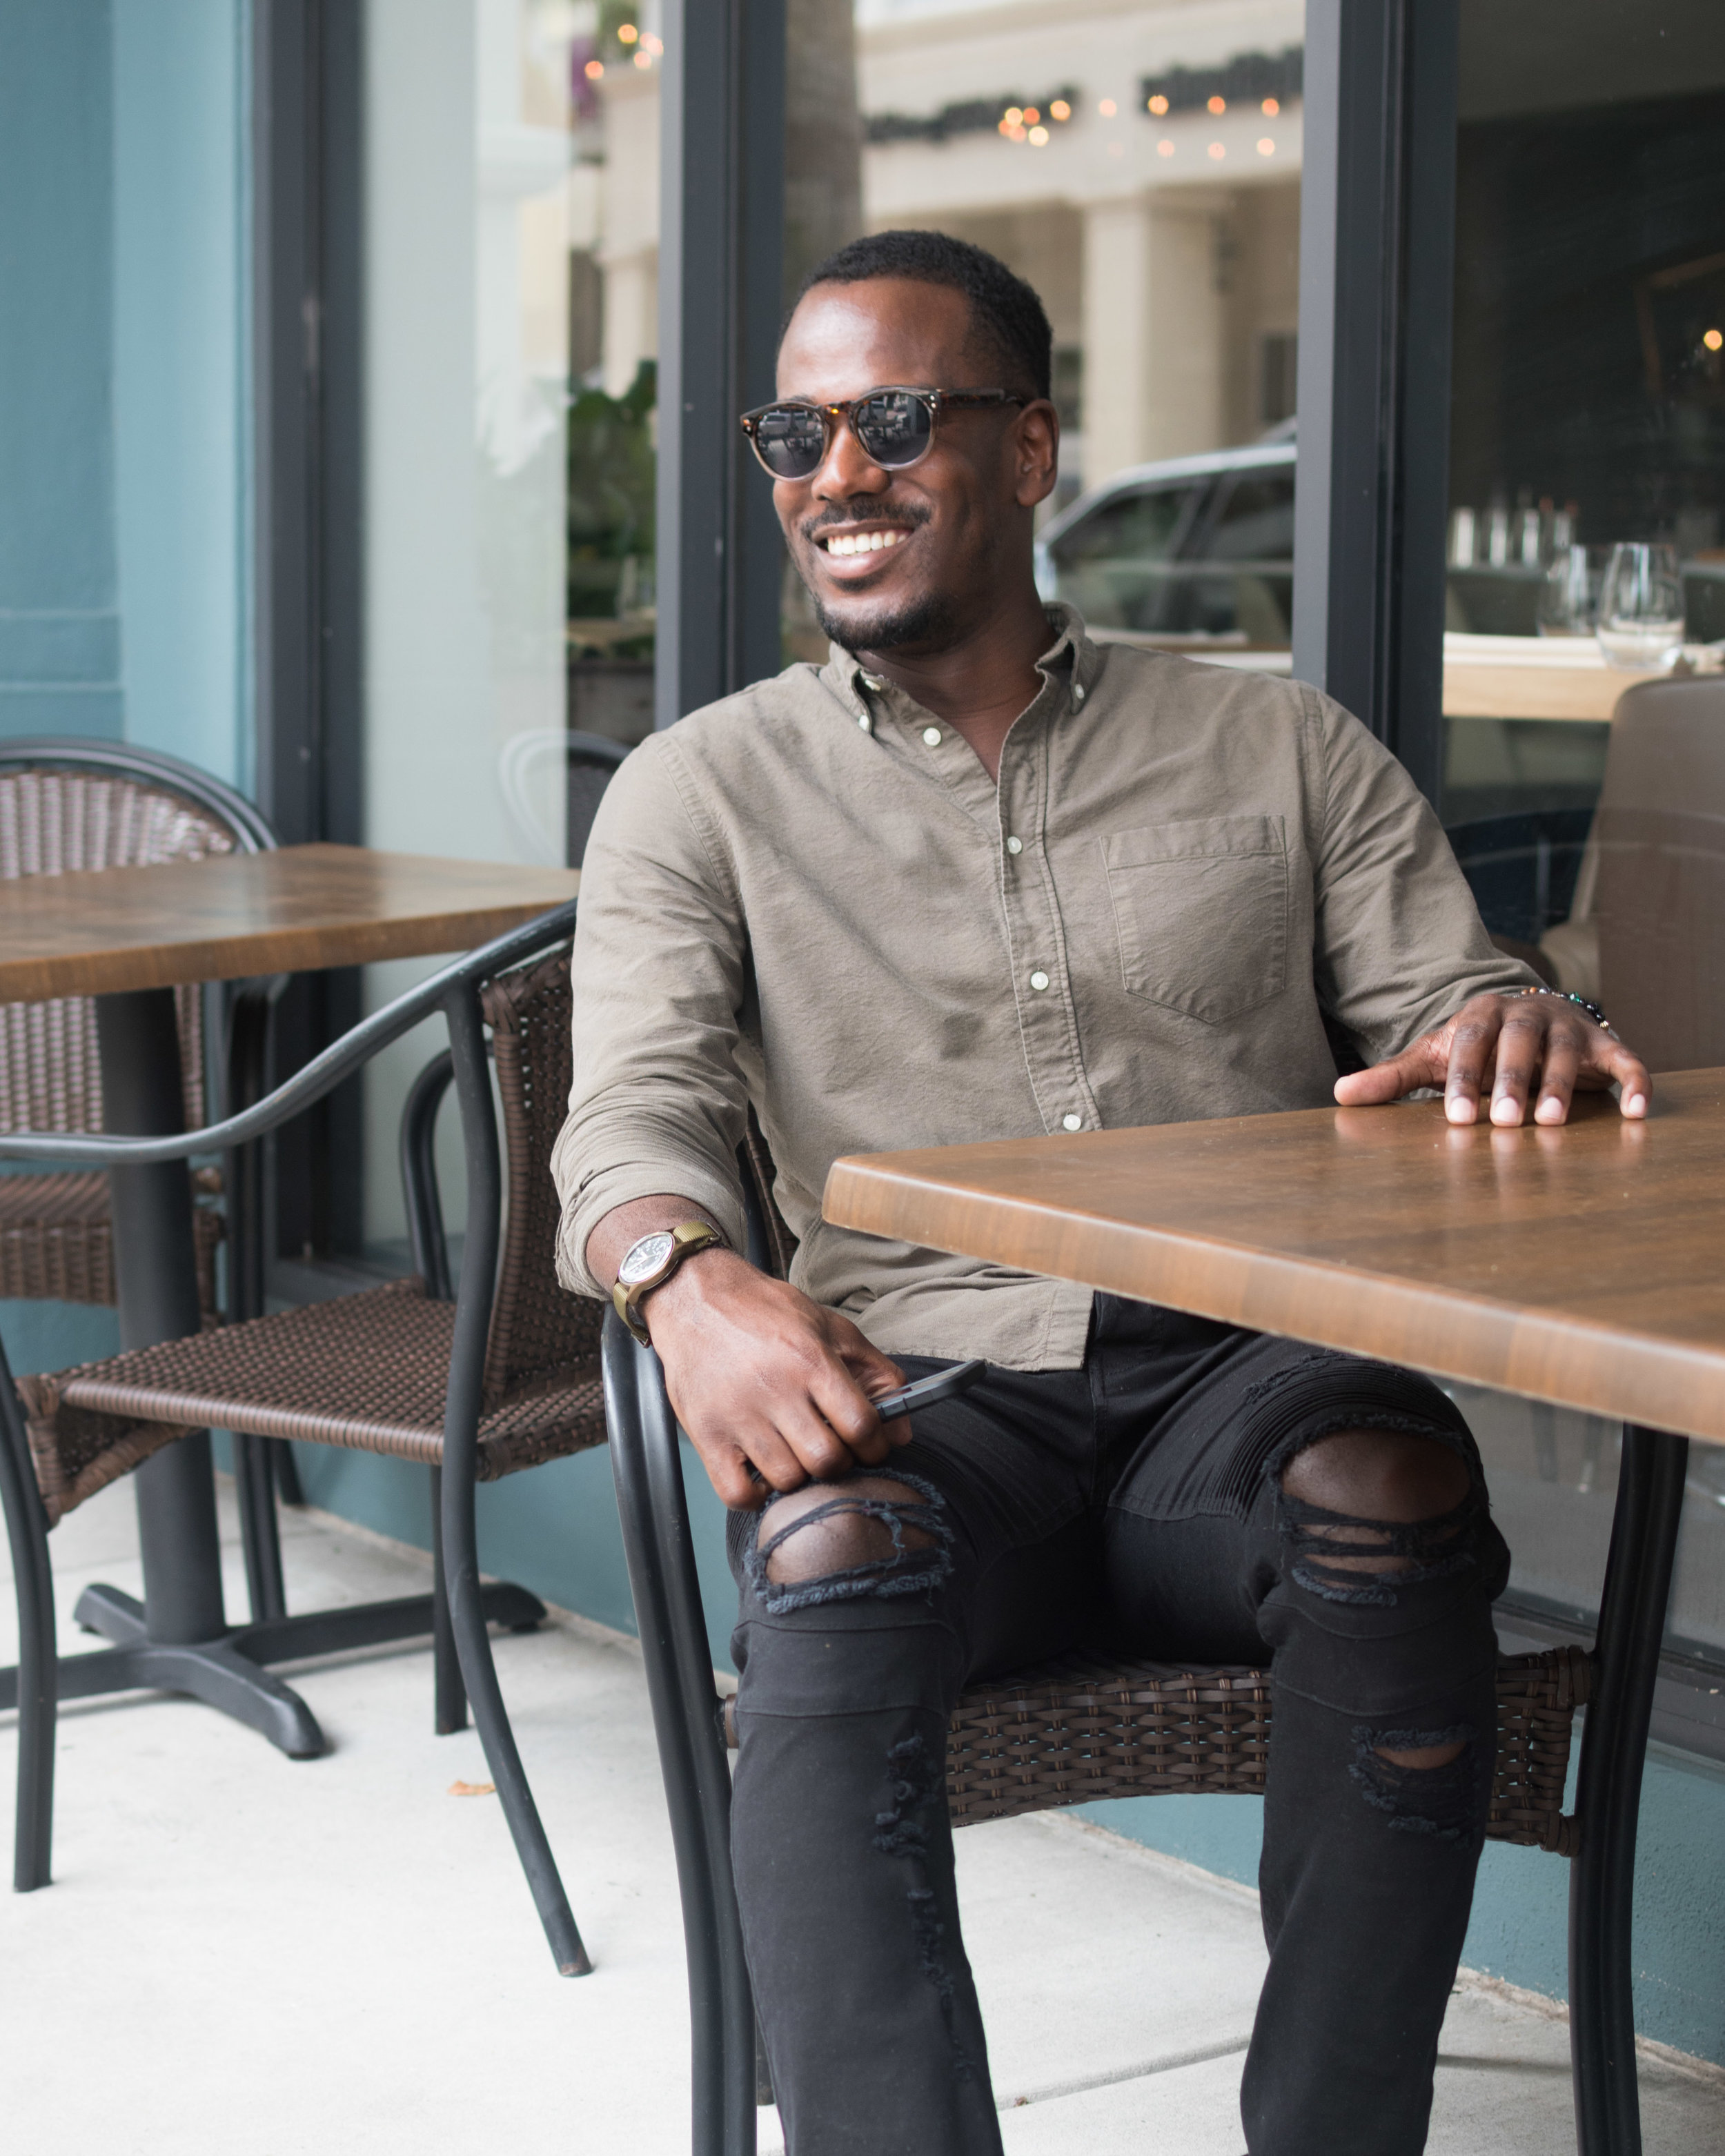 Transitioning into autumn, I like to wear breathable cotton shirts in fall-appropriate colors to balance both comfort and style.#GregsStyleGuide@DiscoverCotton #ShopCotton